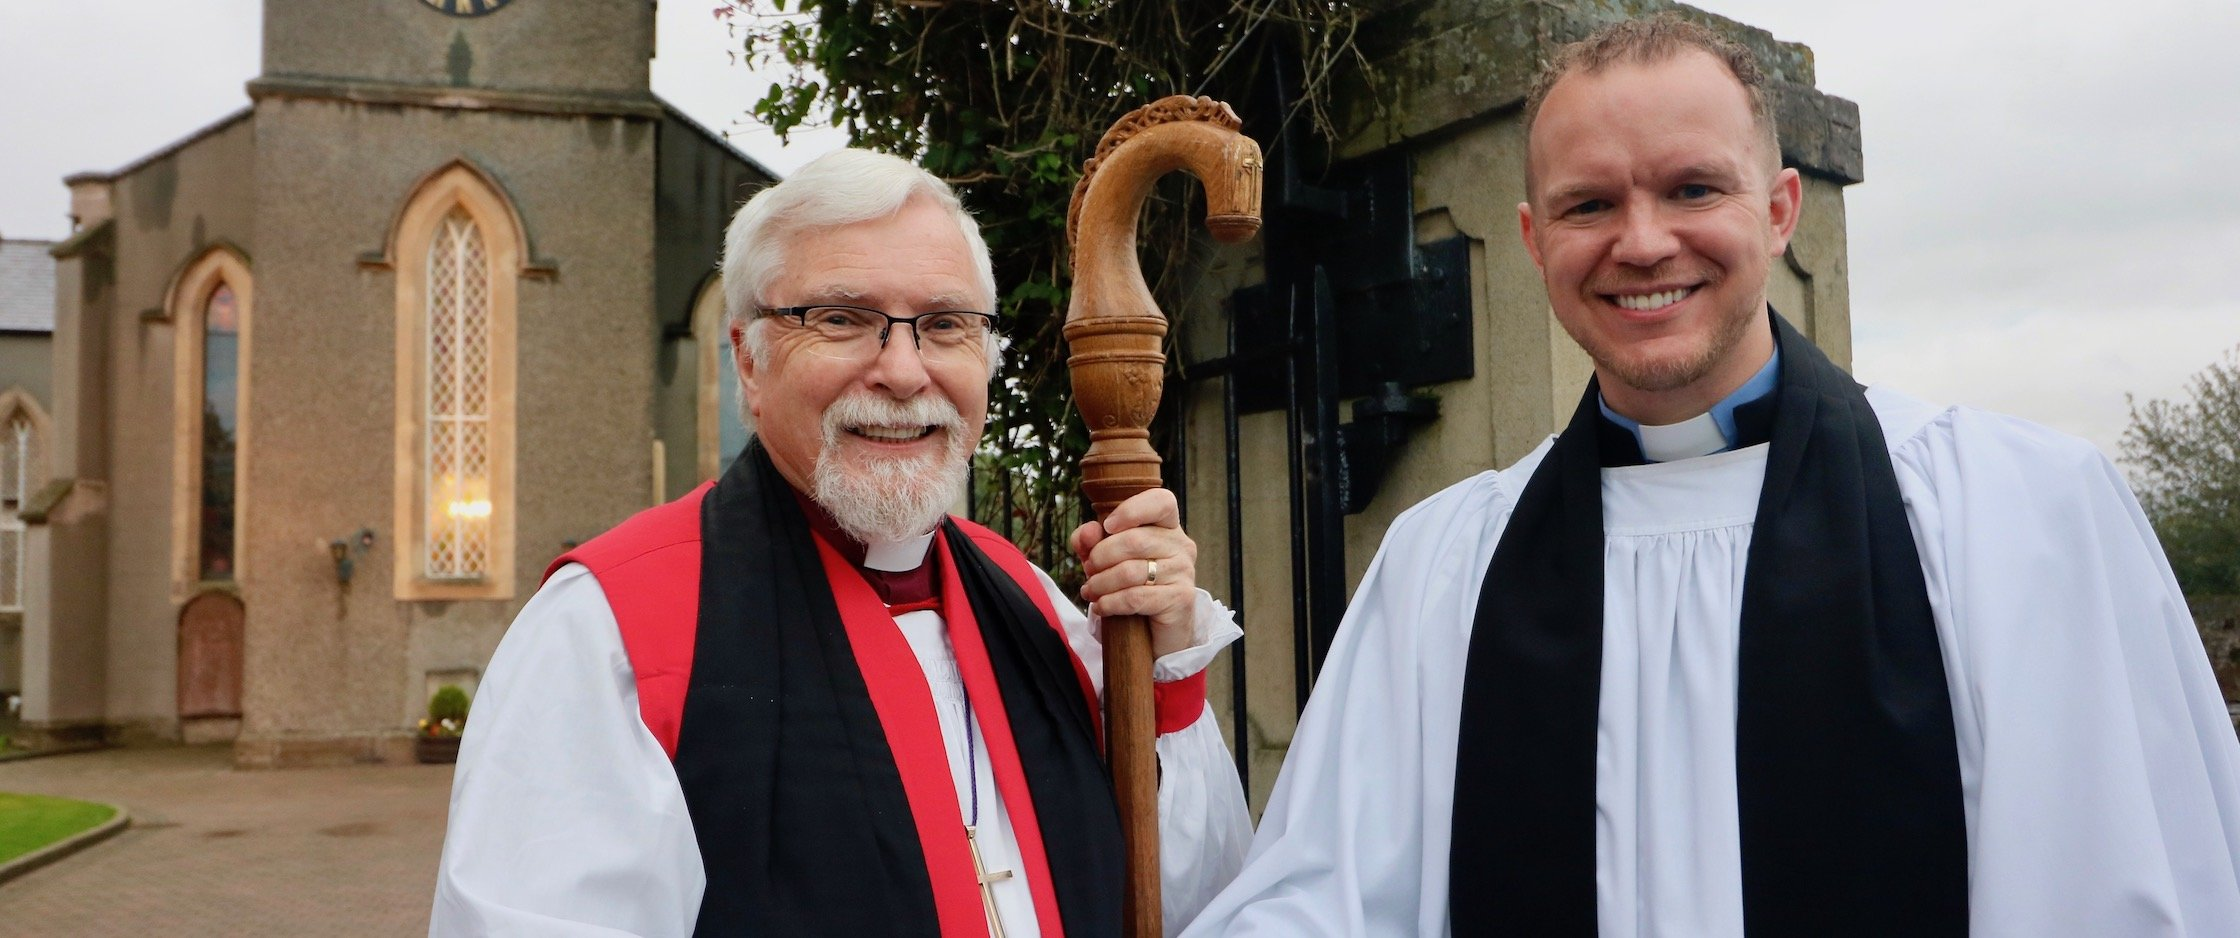 Revd Sam Johnston introduced as Minister–in–Charge in Comber